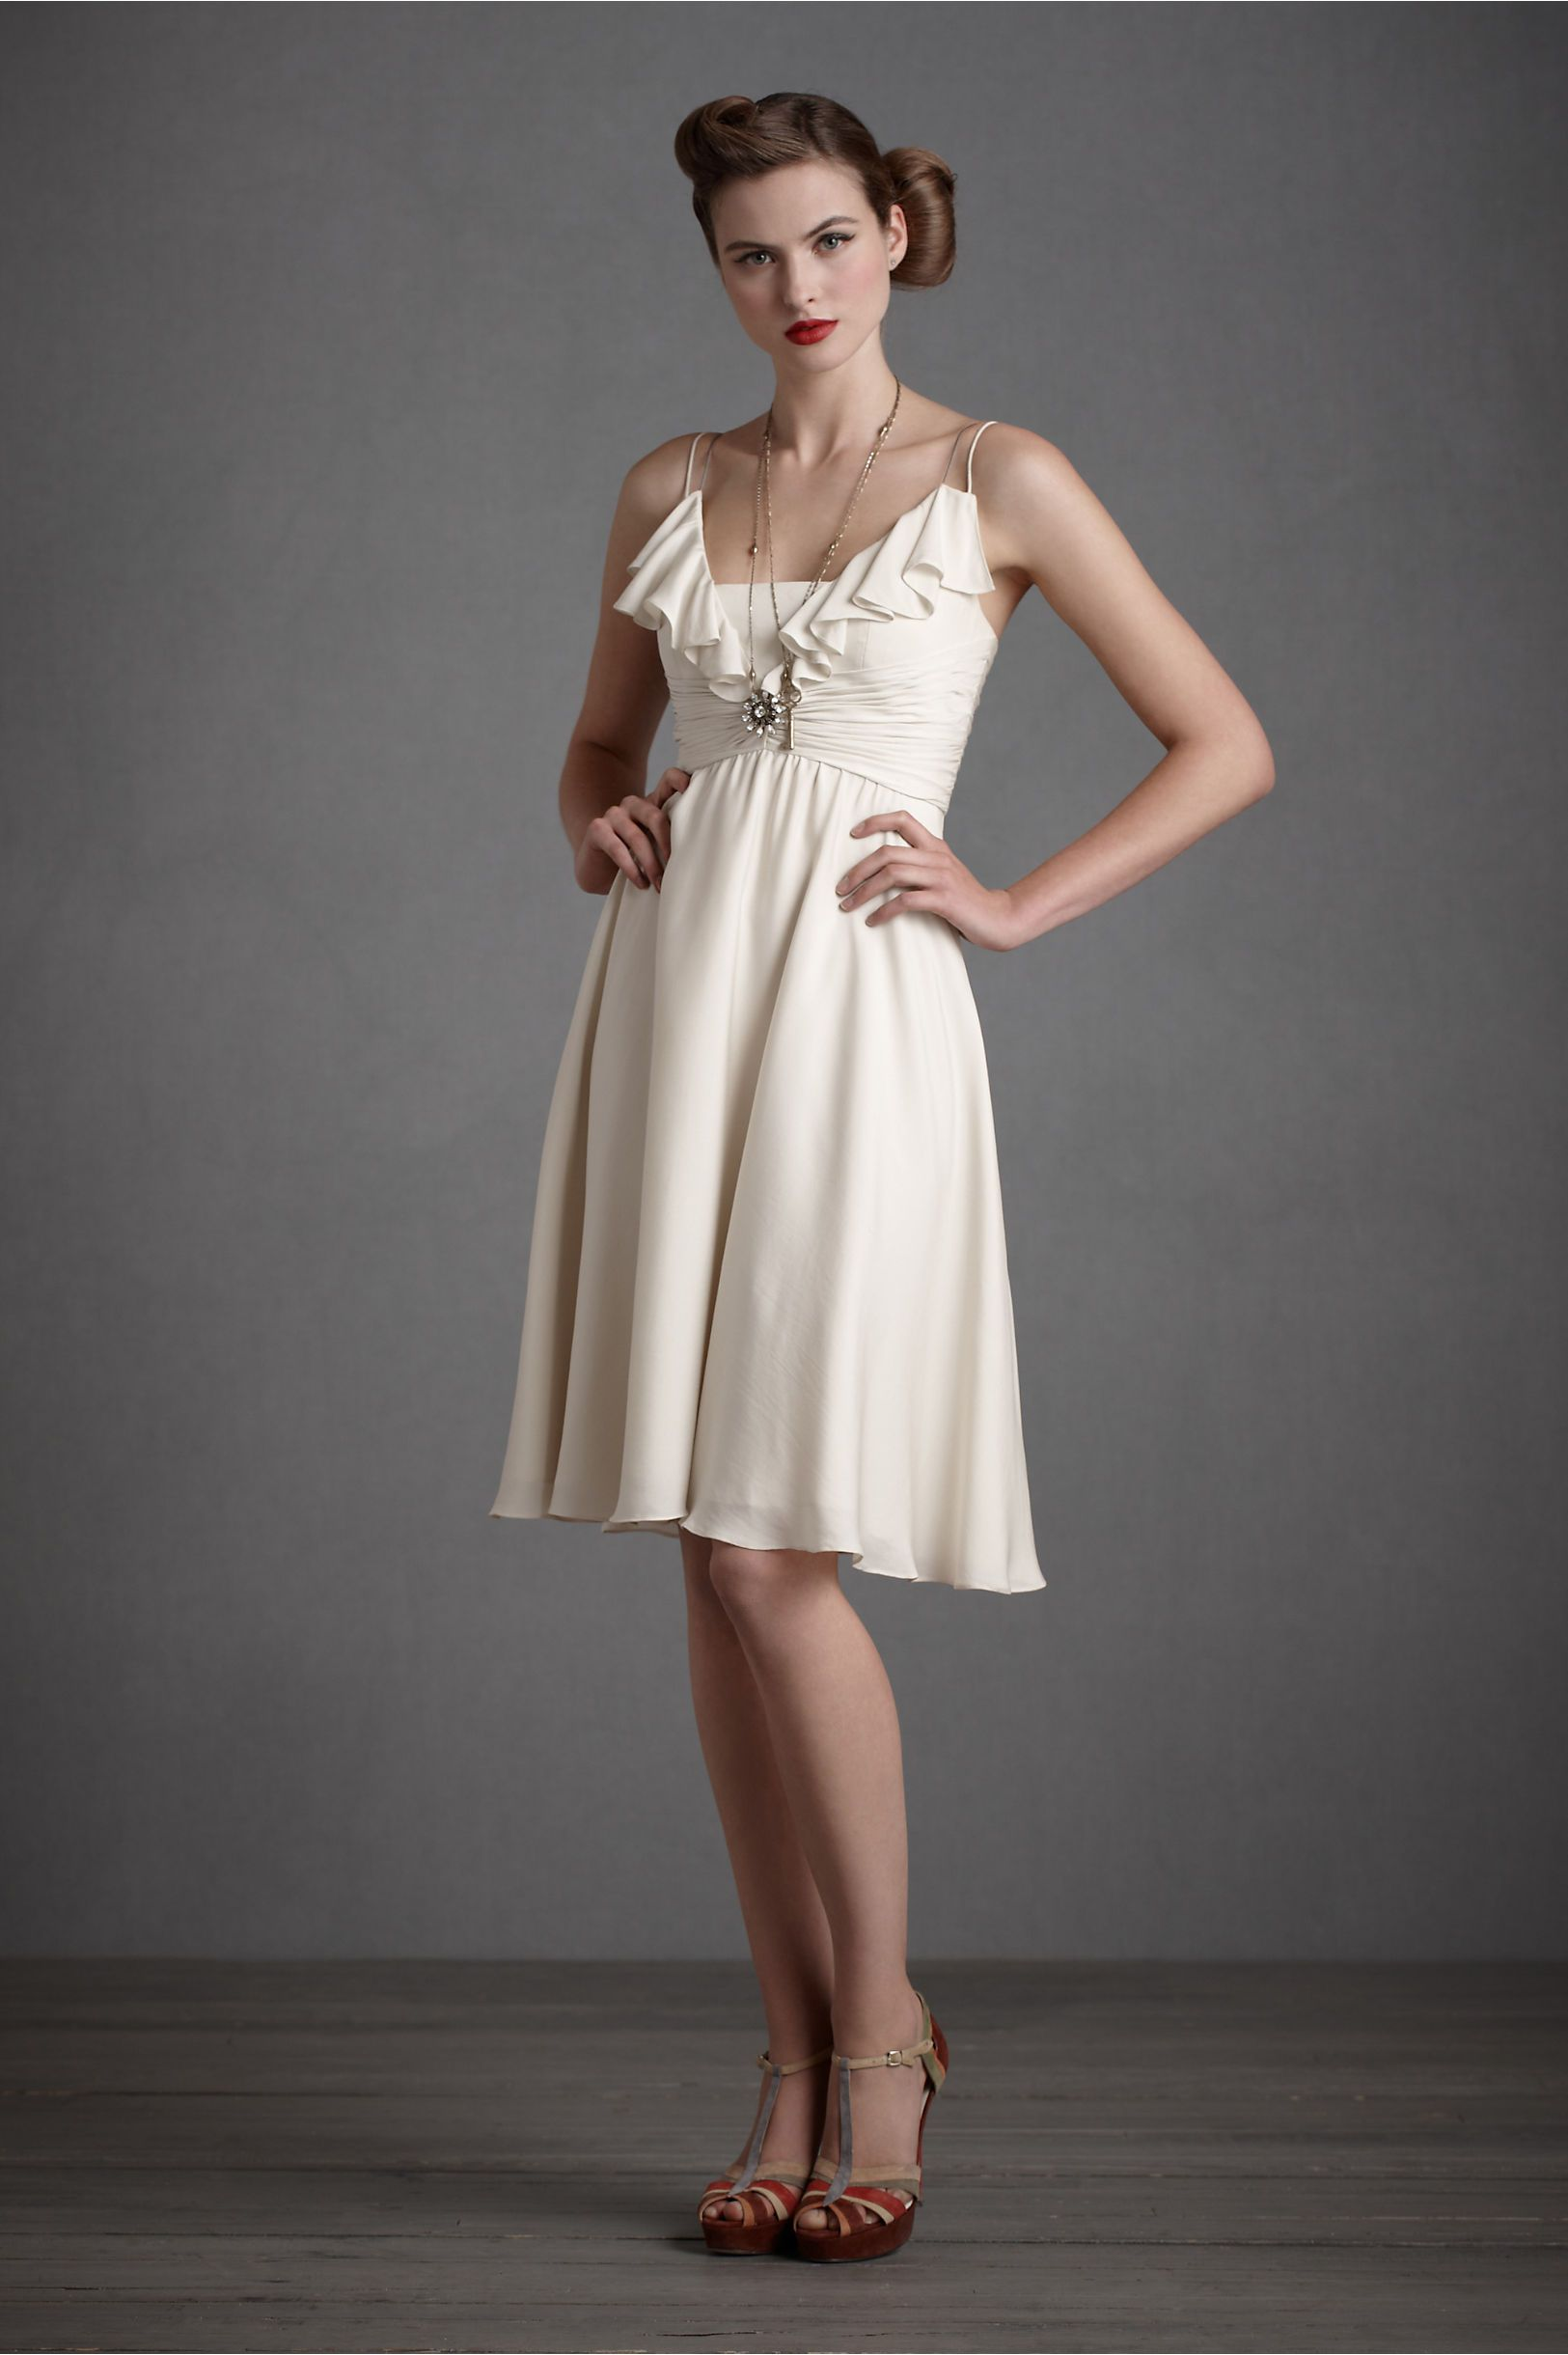 Barbecue Wedding Rehearsal Dinner Dress. Love this dress for a more ...